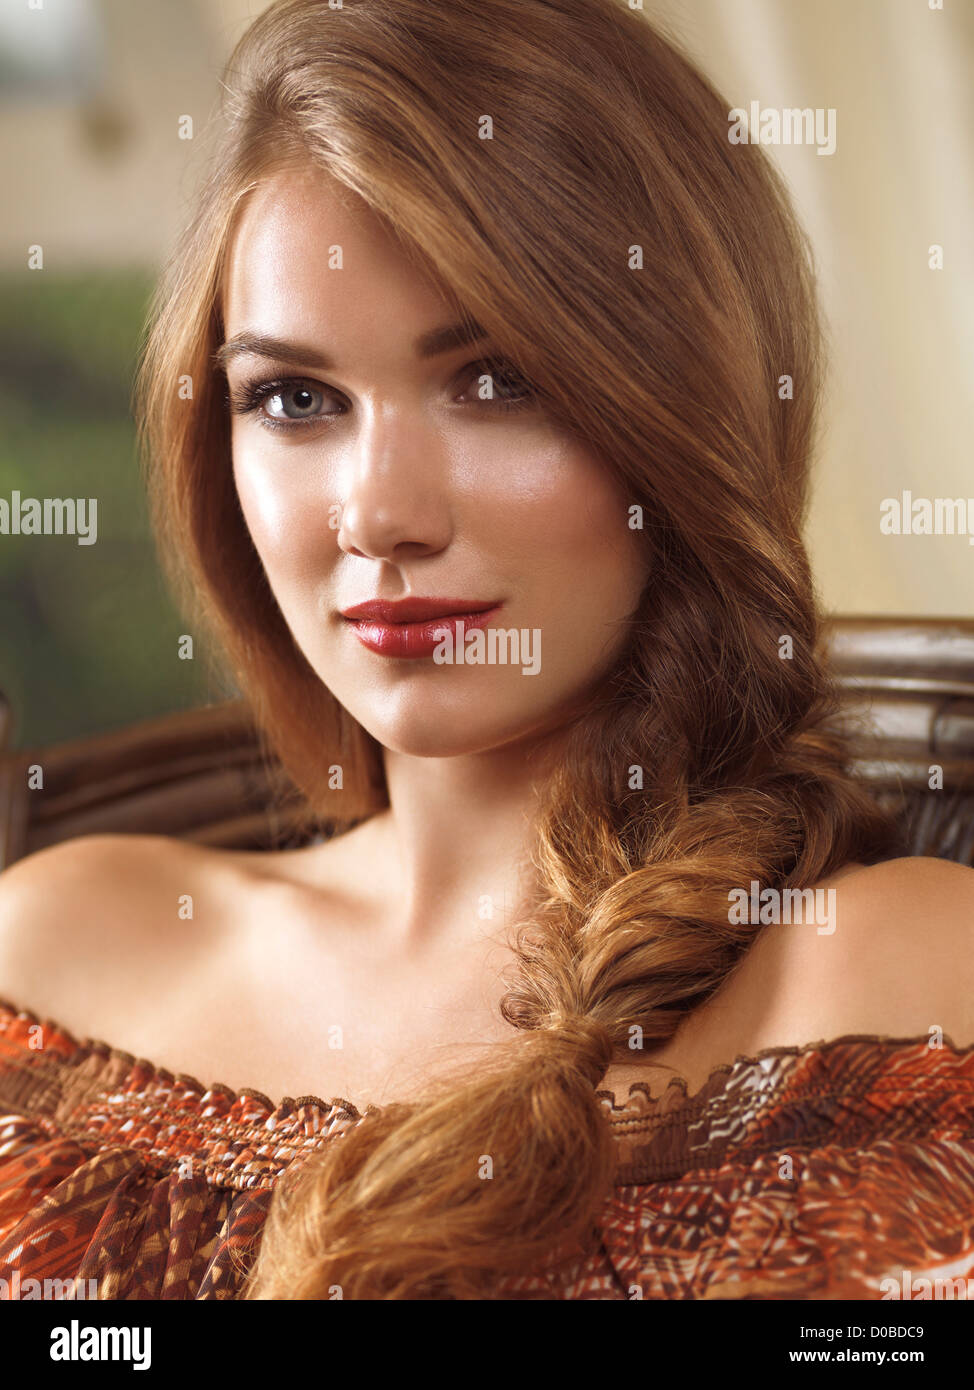 Beauty portrait of a young woman with long hair in a braid sitting in a chair - Stock Image